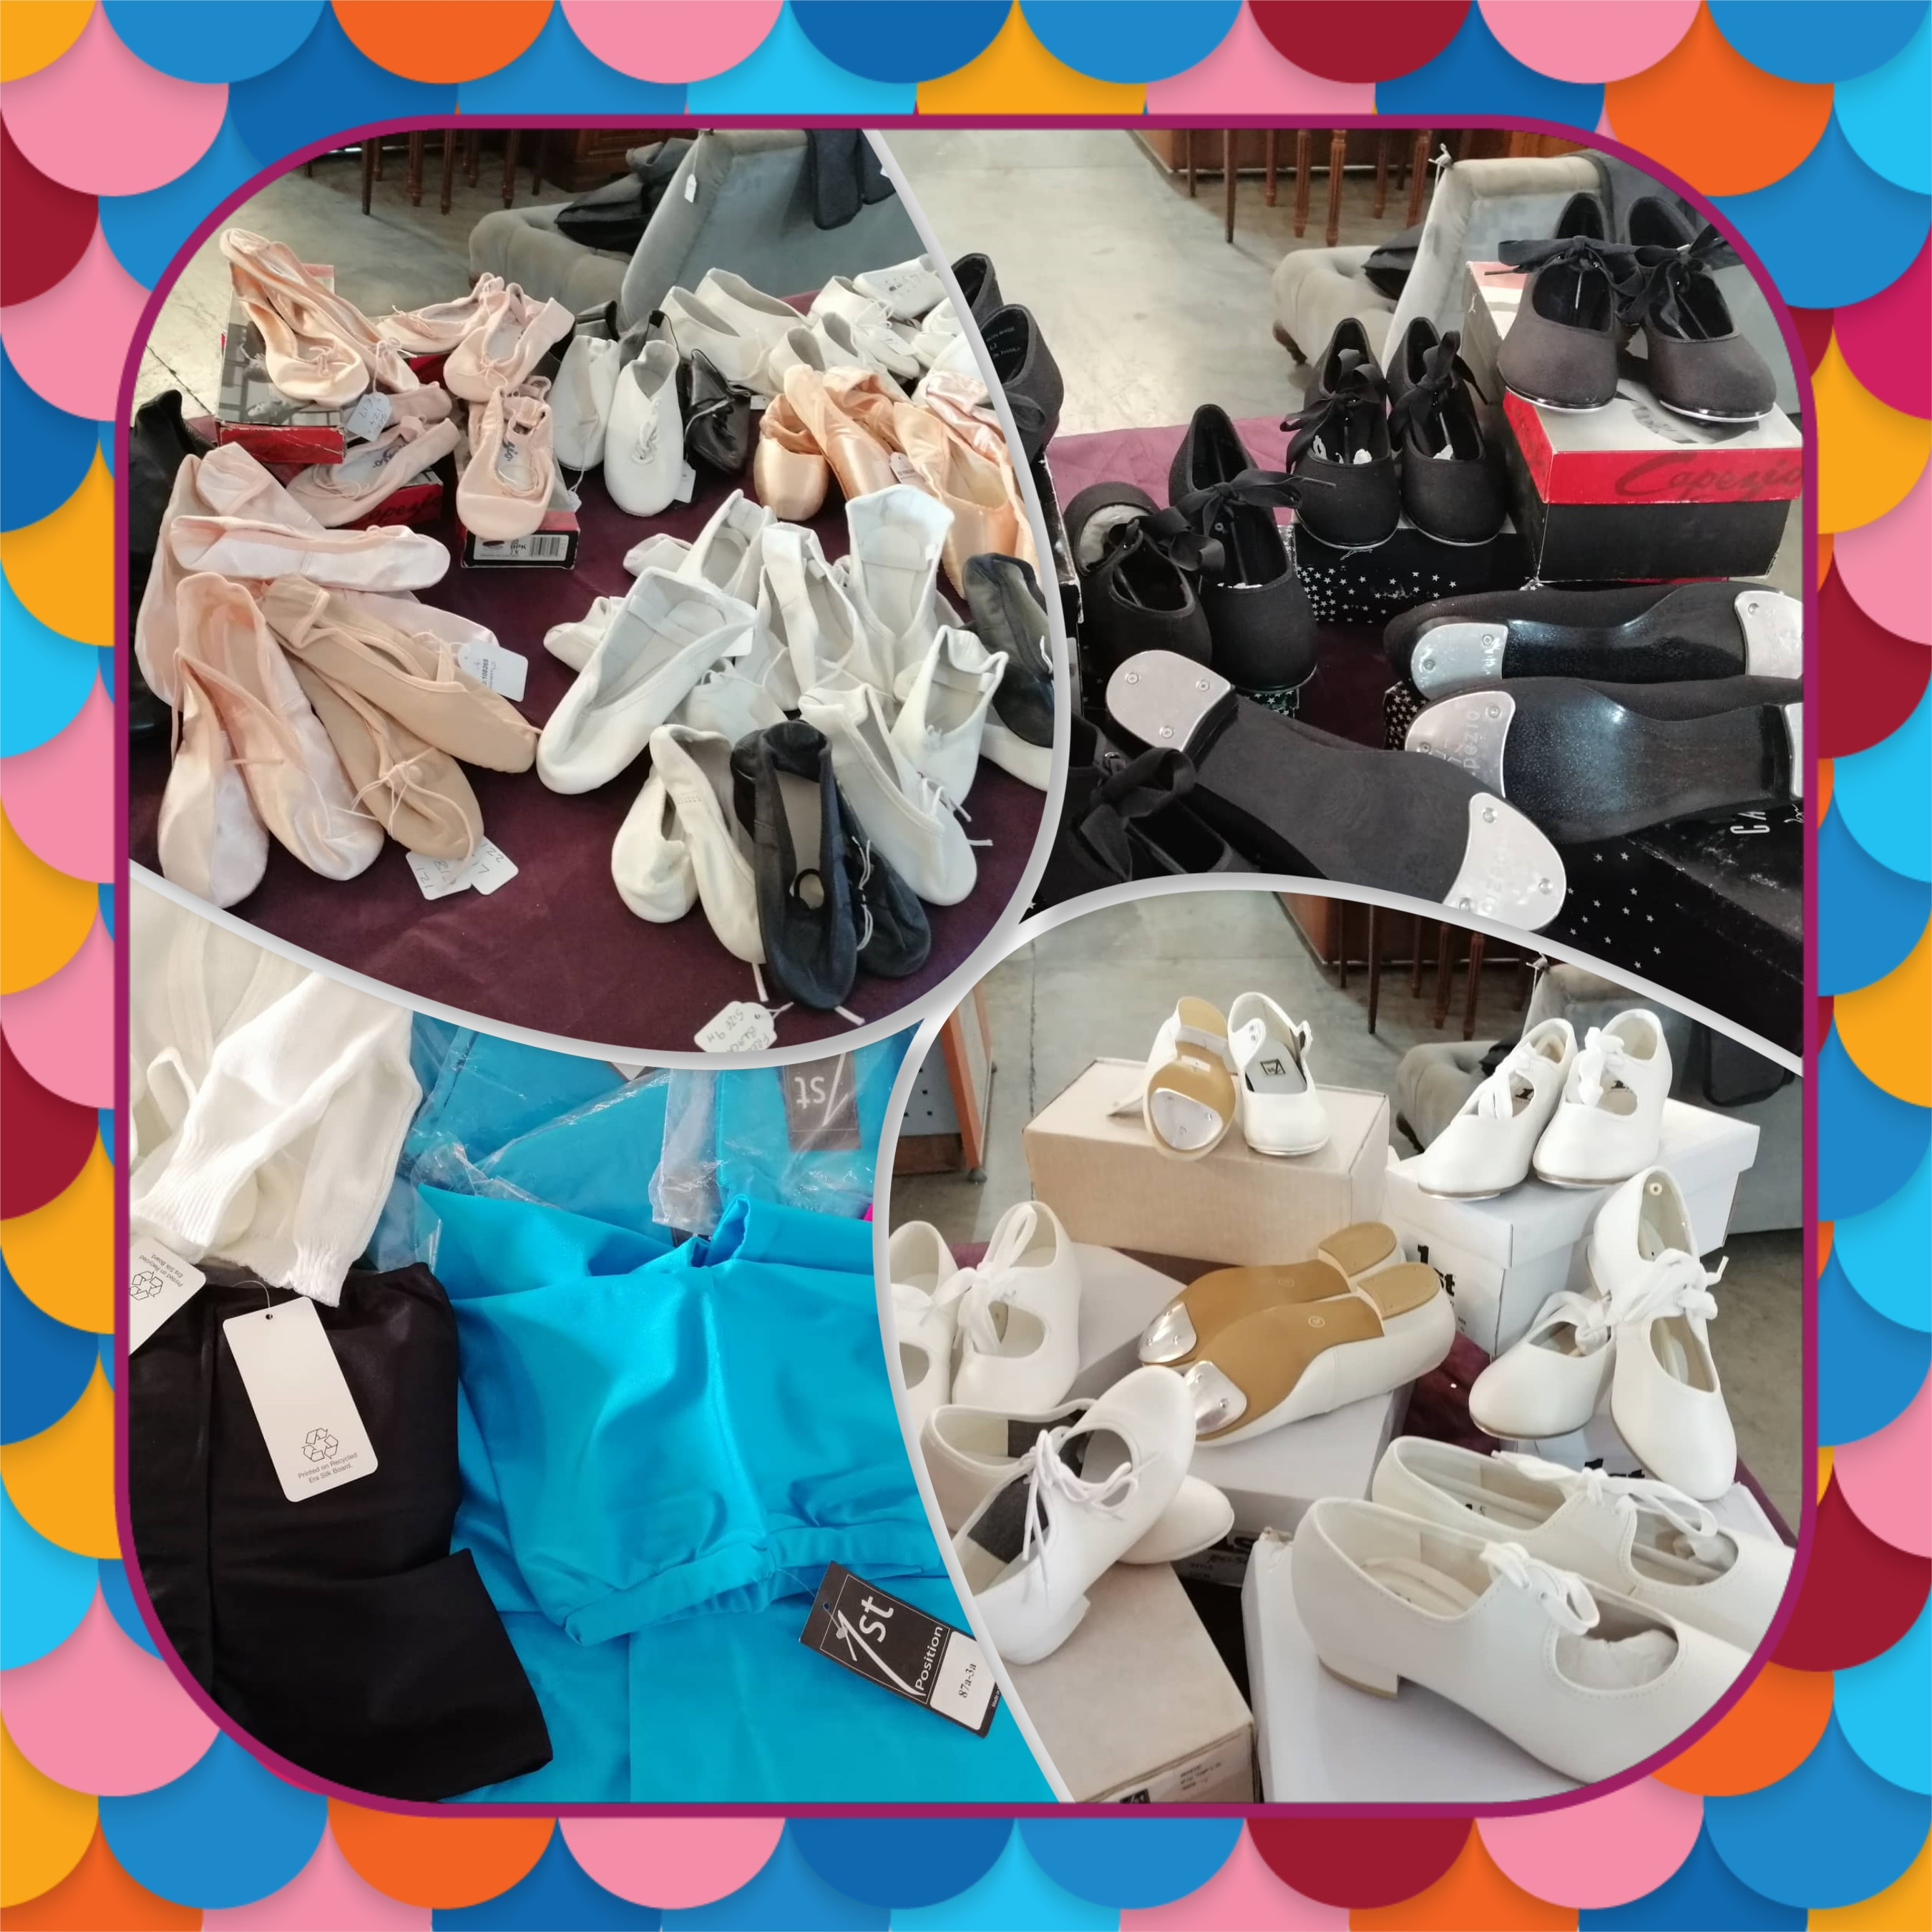 Let's Dance! Tap Shoes, Ballet Shoes, Jazz Shoes and more all at 30% RRP!